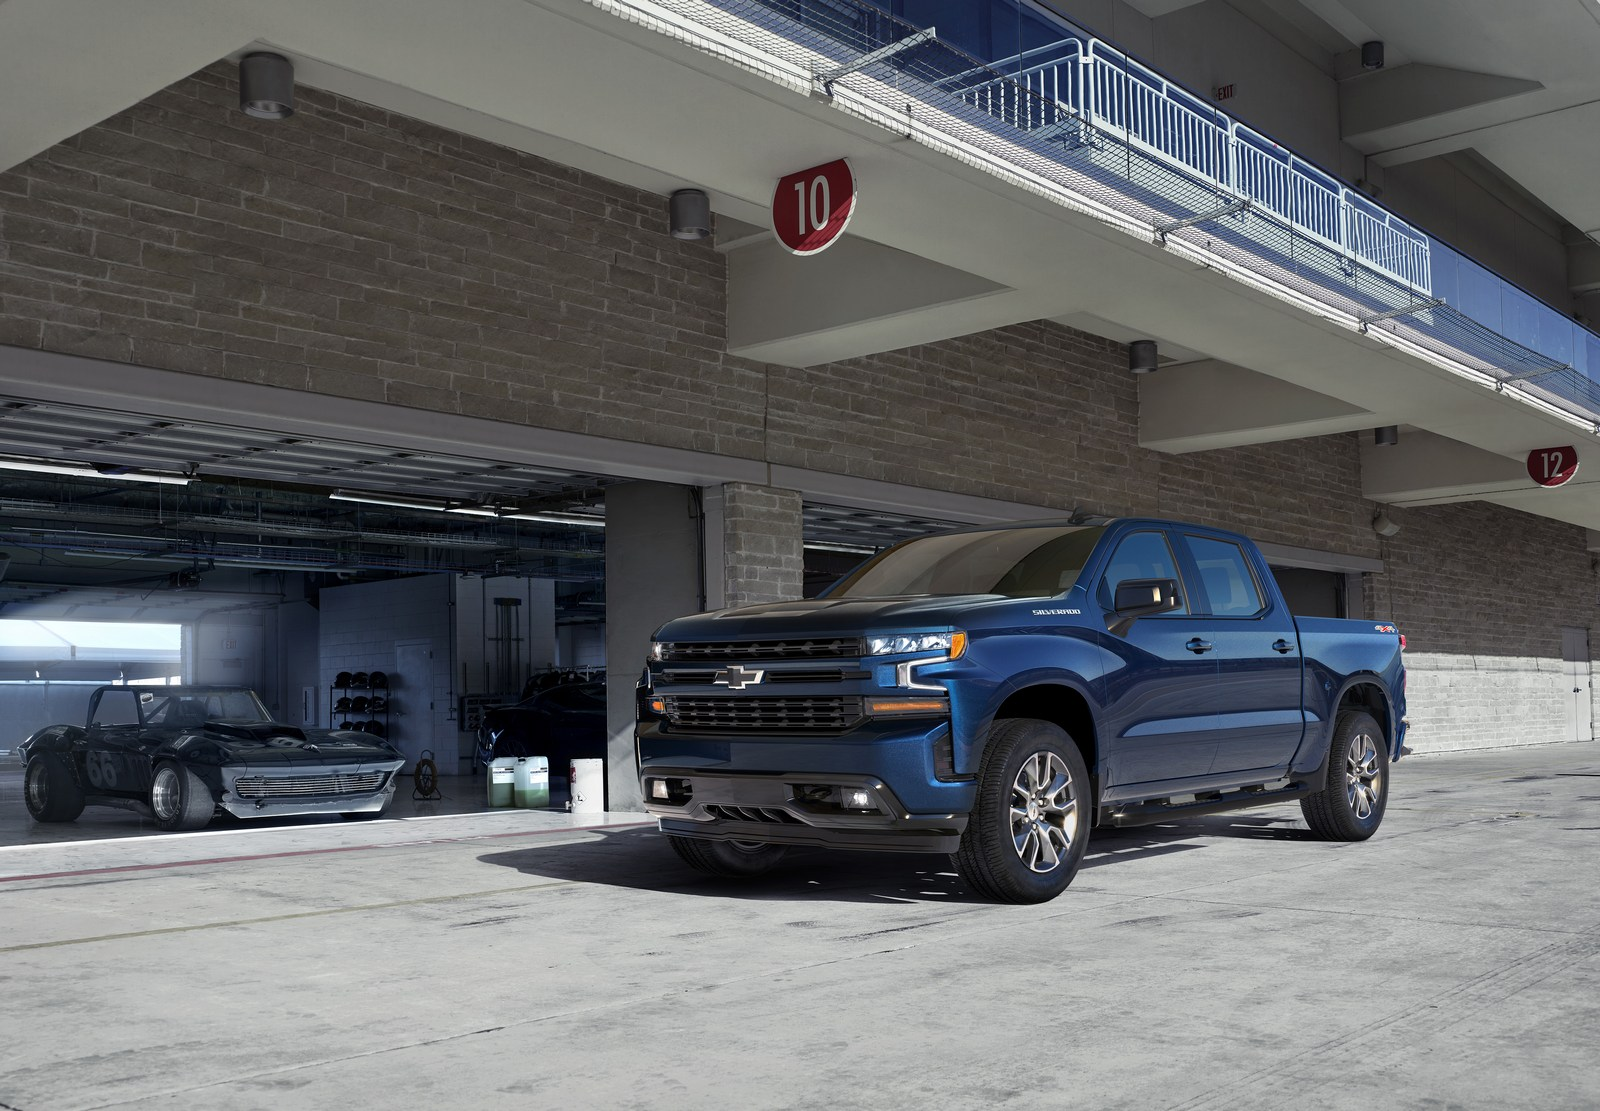 Chevrolet Silverado Hd Looks Massive In First Teaser Photo on 2015 chevy colorado extended cab interior